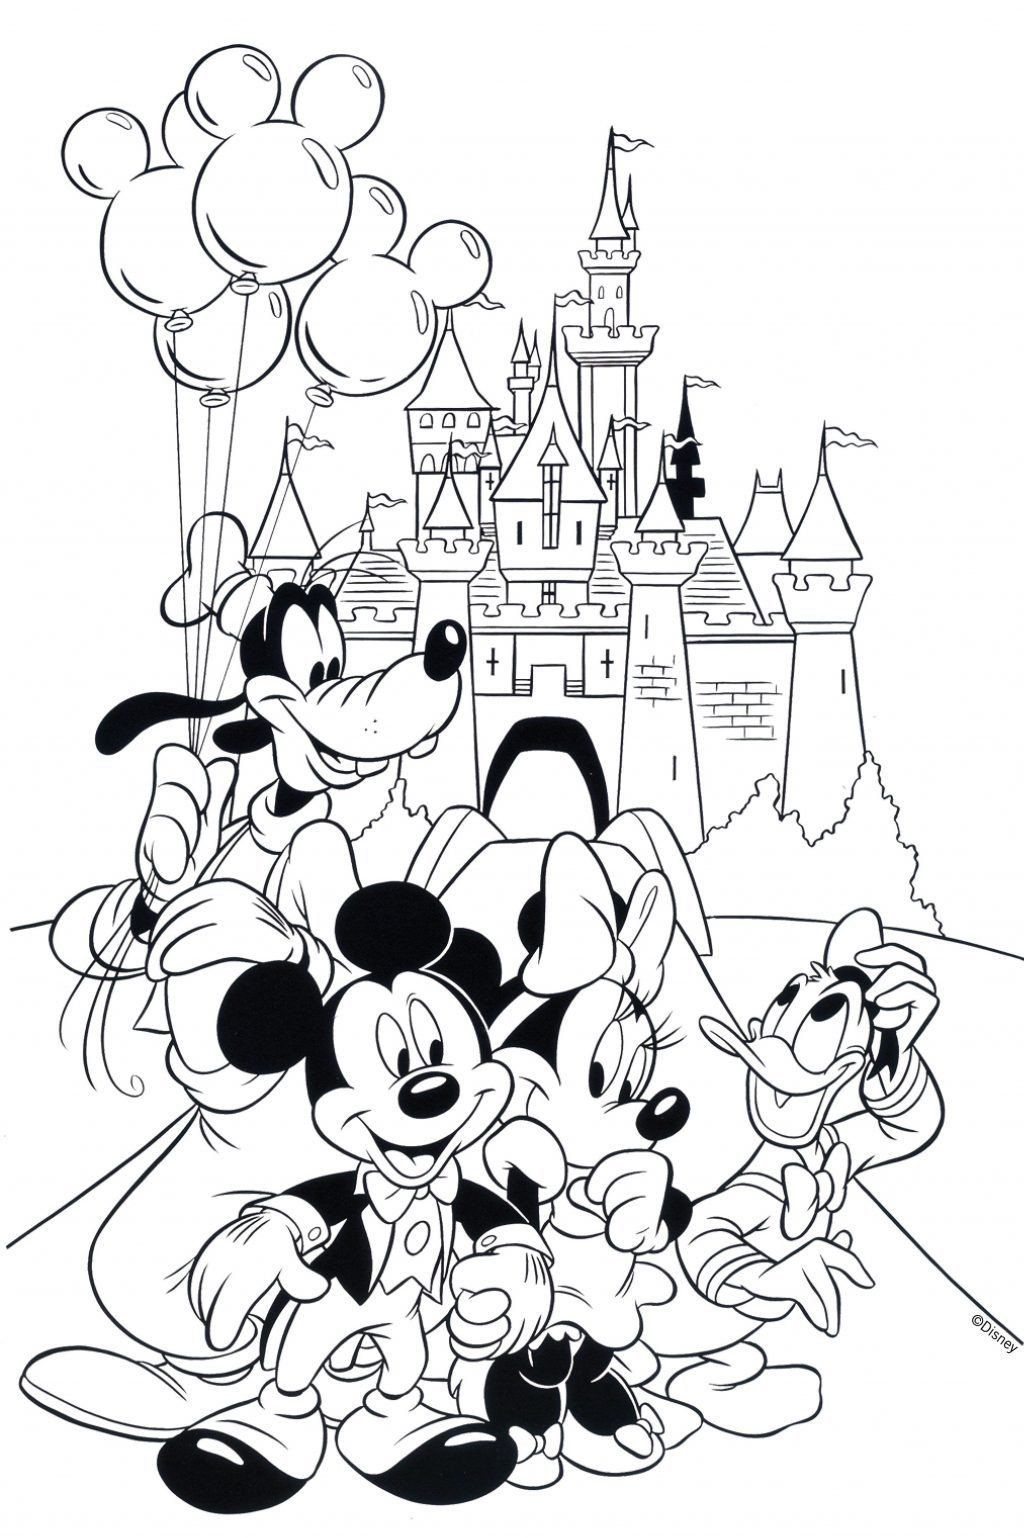 Disney Coloring Pages Pdf Luxury Coloring Pages Coloring Pages Pdf Disney Free Frozen Cartoon Coloring Pages Disney Coloring Pages Disney Coloring Sheets